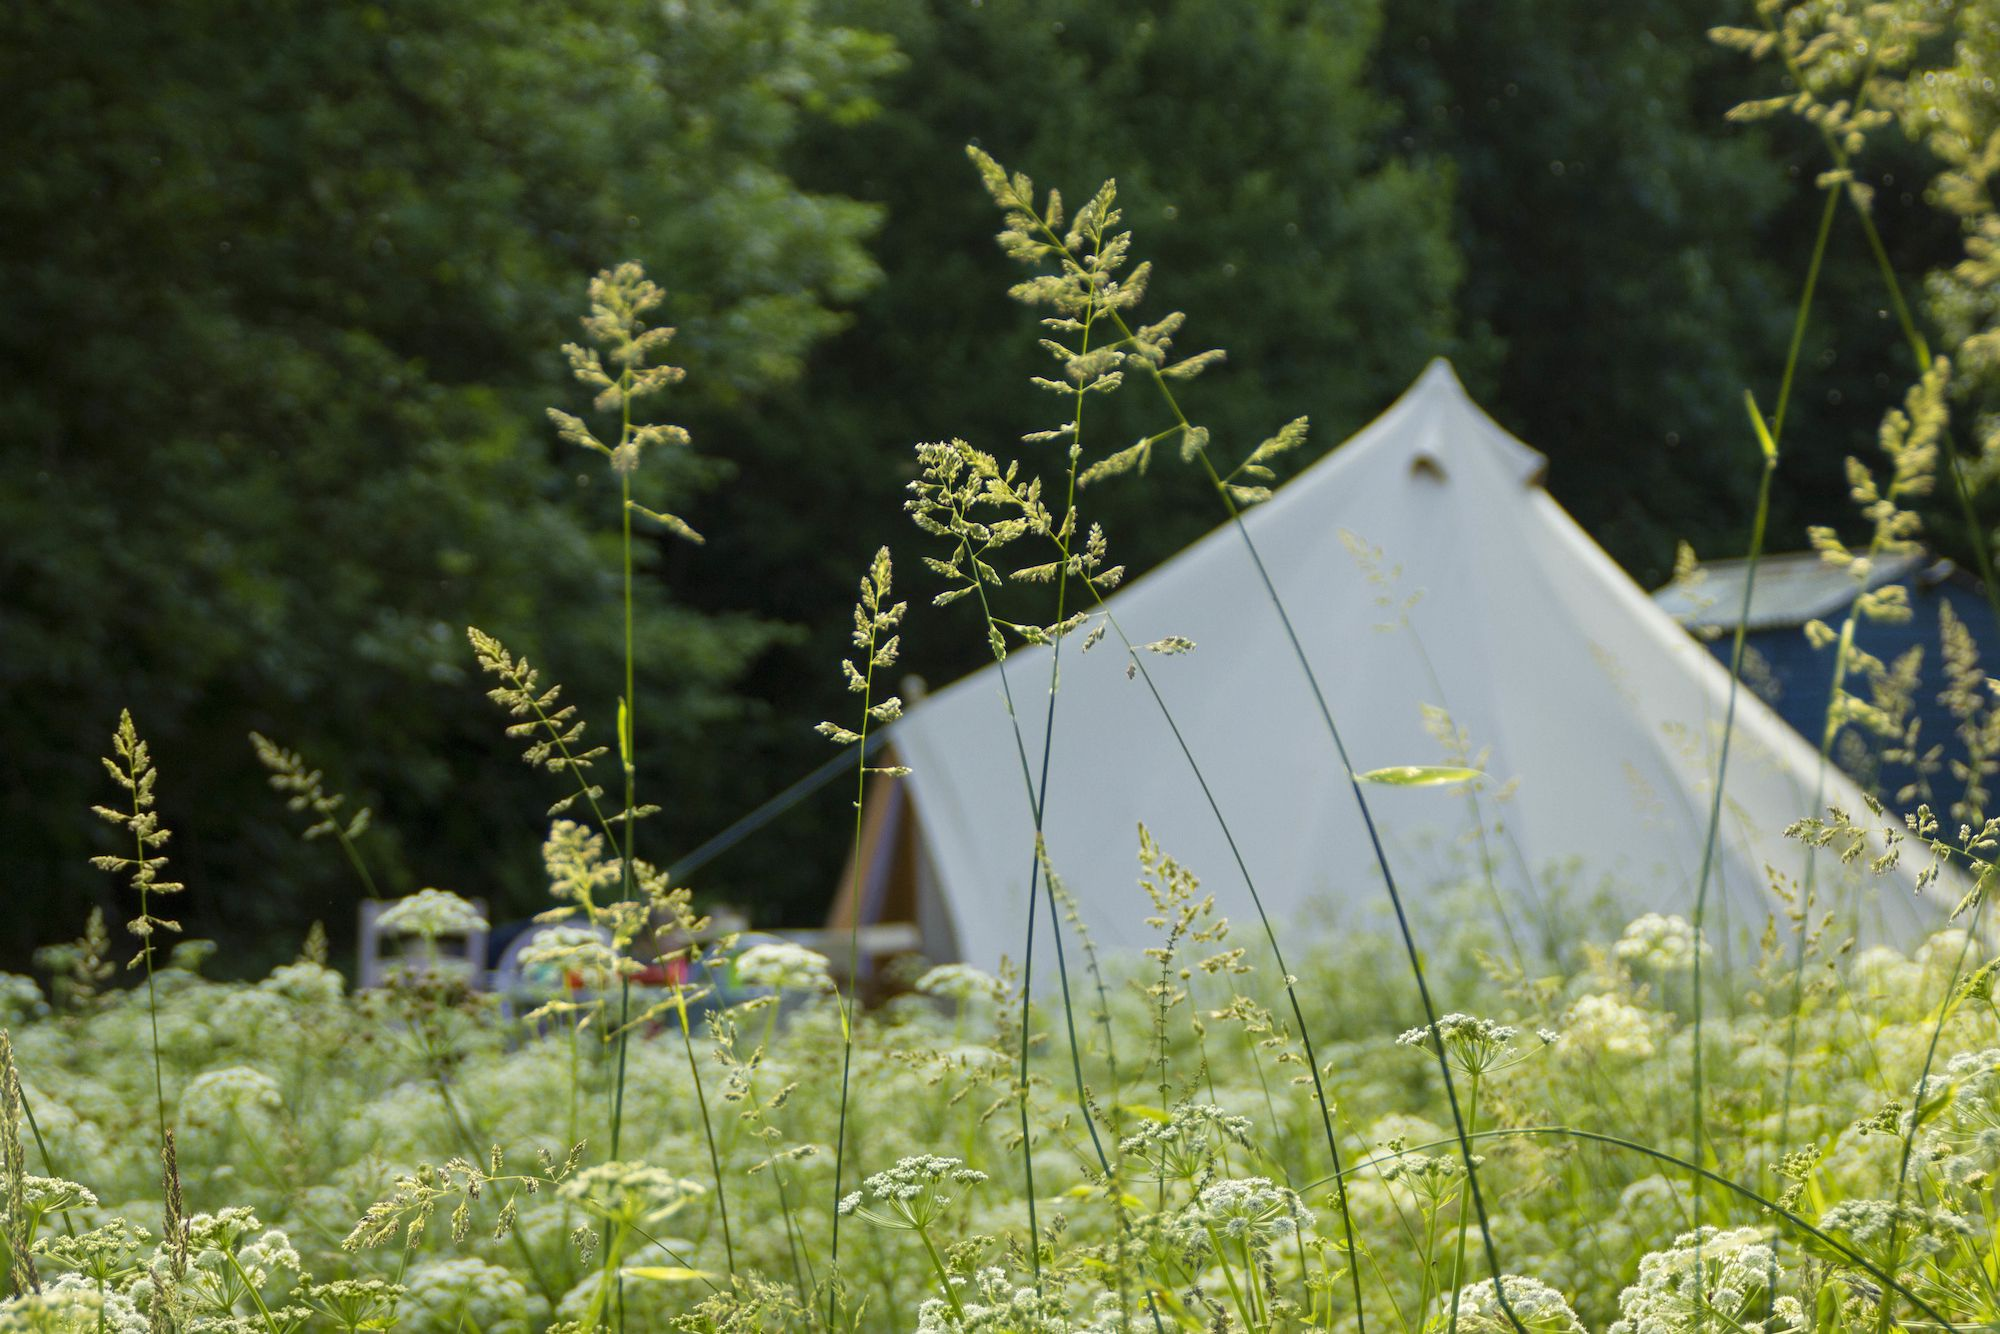 New Campsites – Brand new campsite openings in the last year